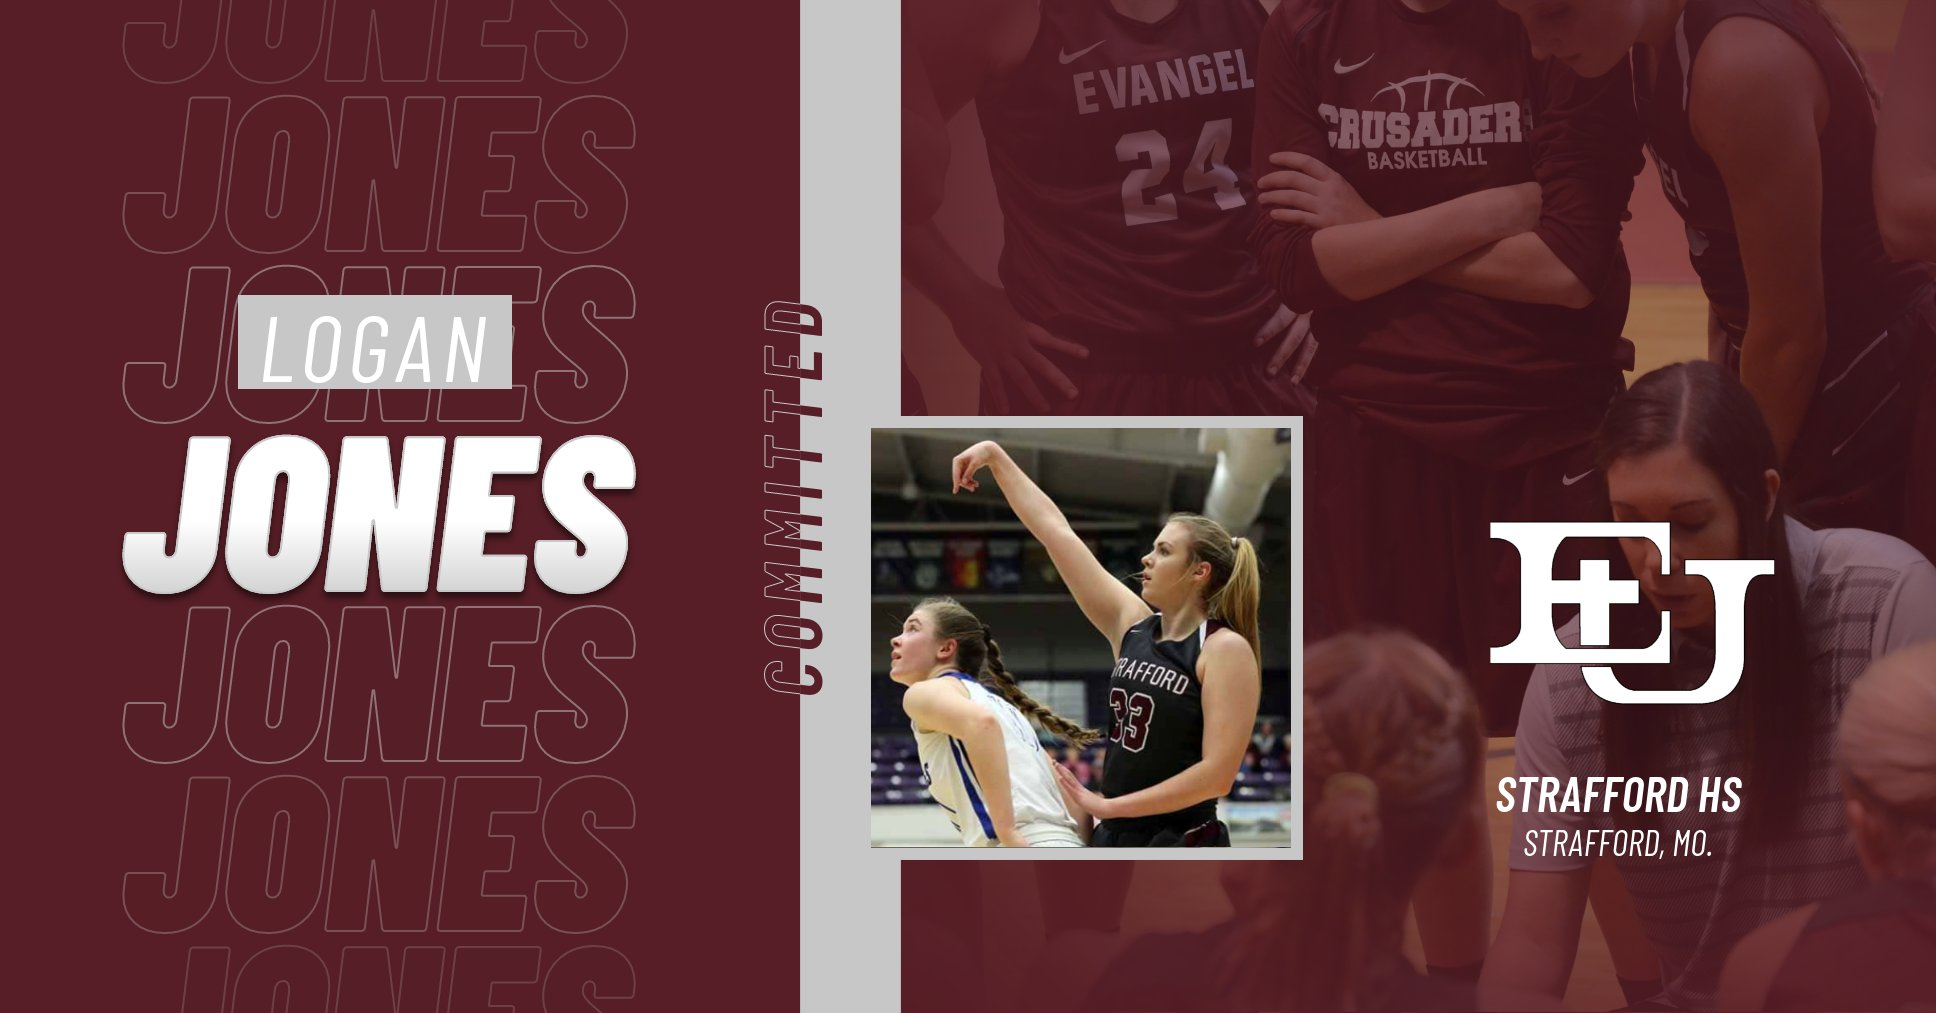 Two-Sport Standout Logan Jones to Join Evangel Women's Basketball for 2020